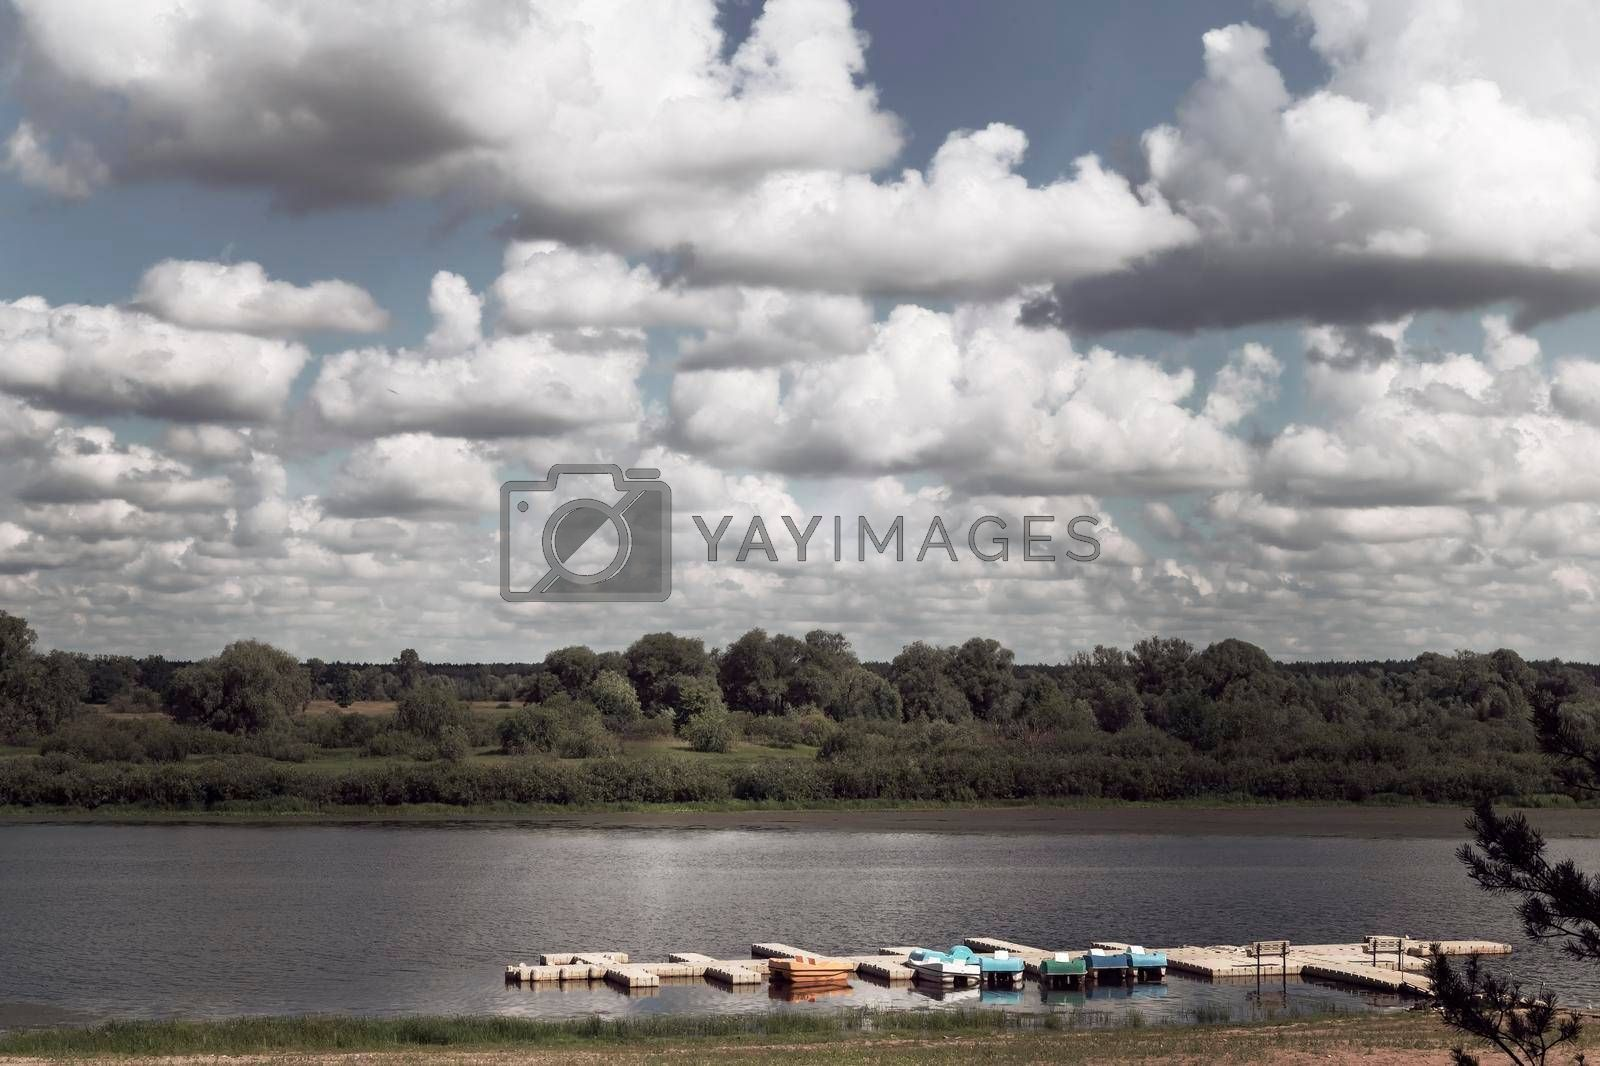 Royalty free image of Summer landscape: river and sandy beach on the shore. by georgina198